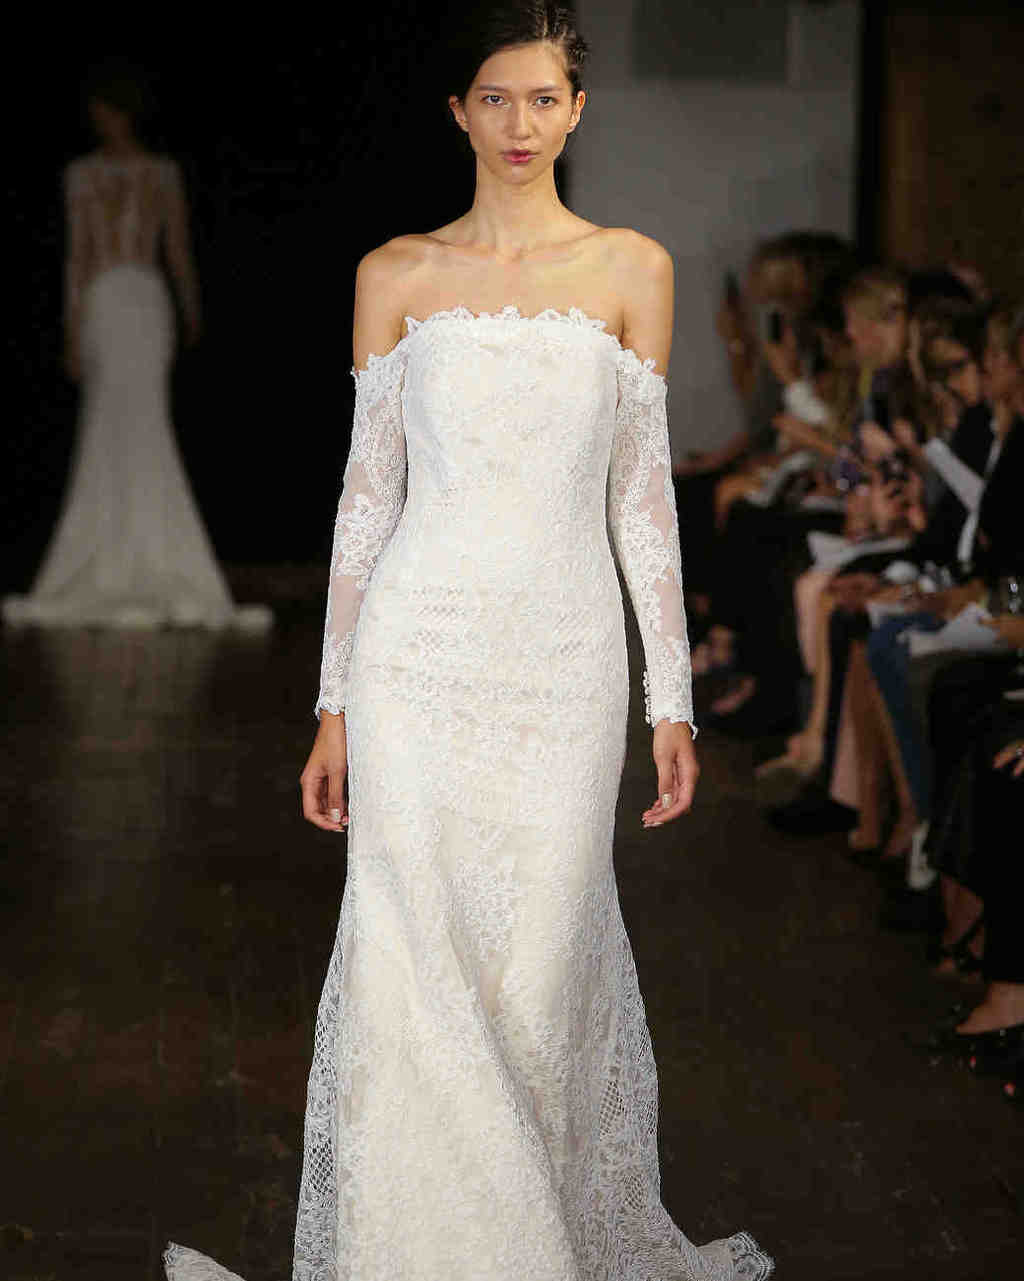 Rivini-wedding-dress-fall2017-62033510-008_vert